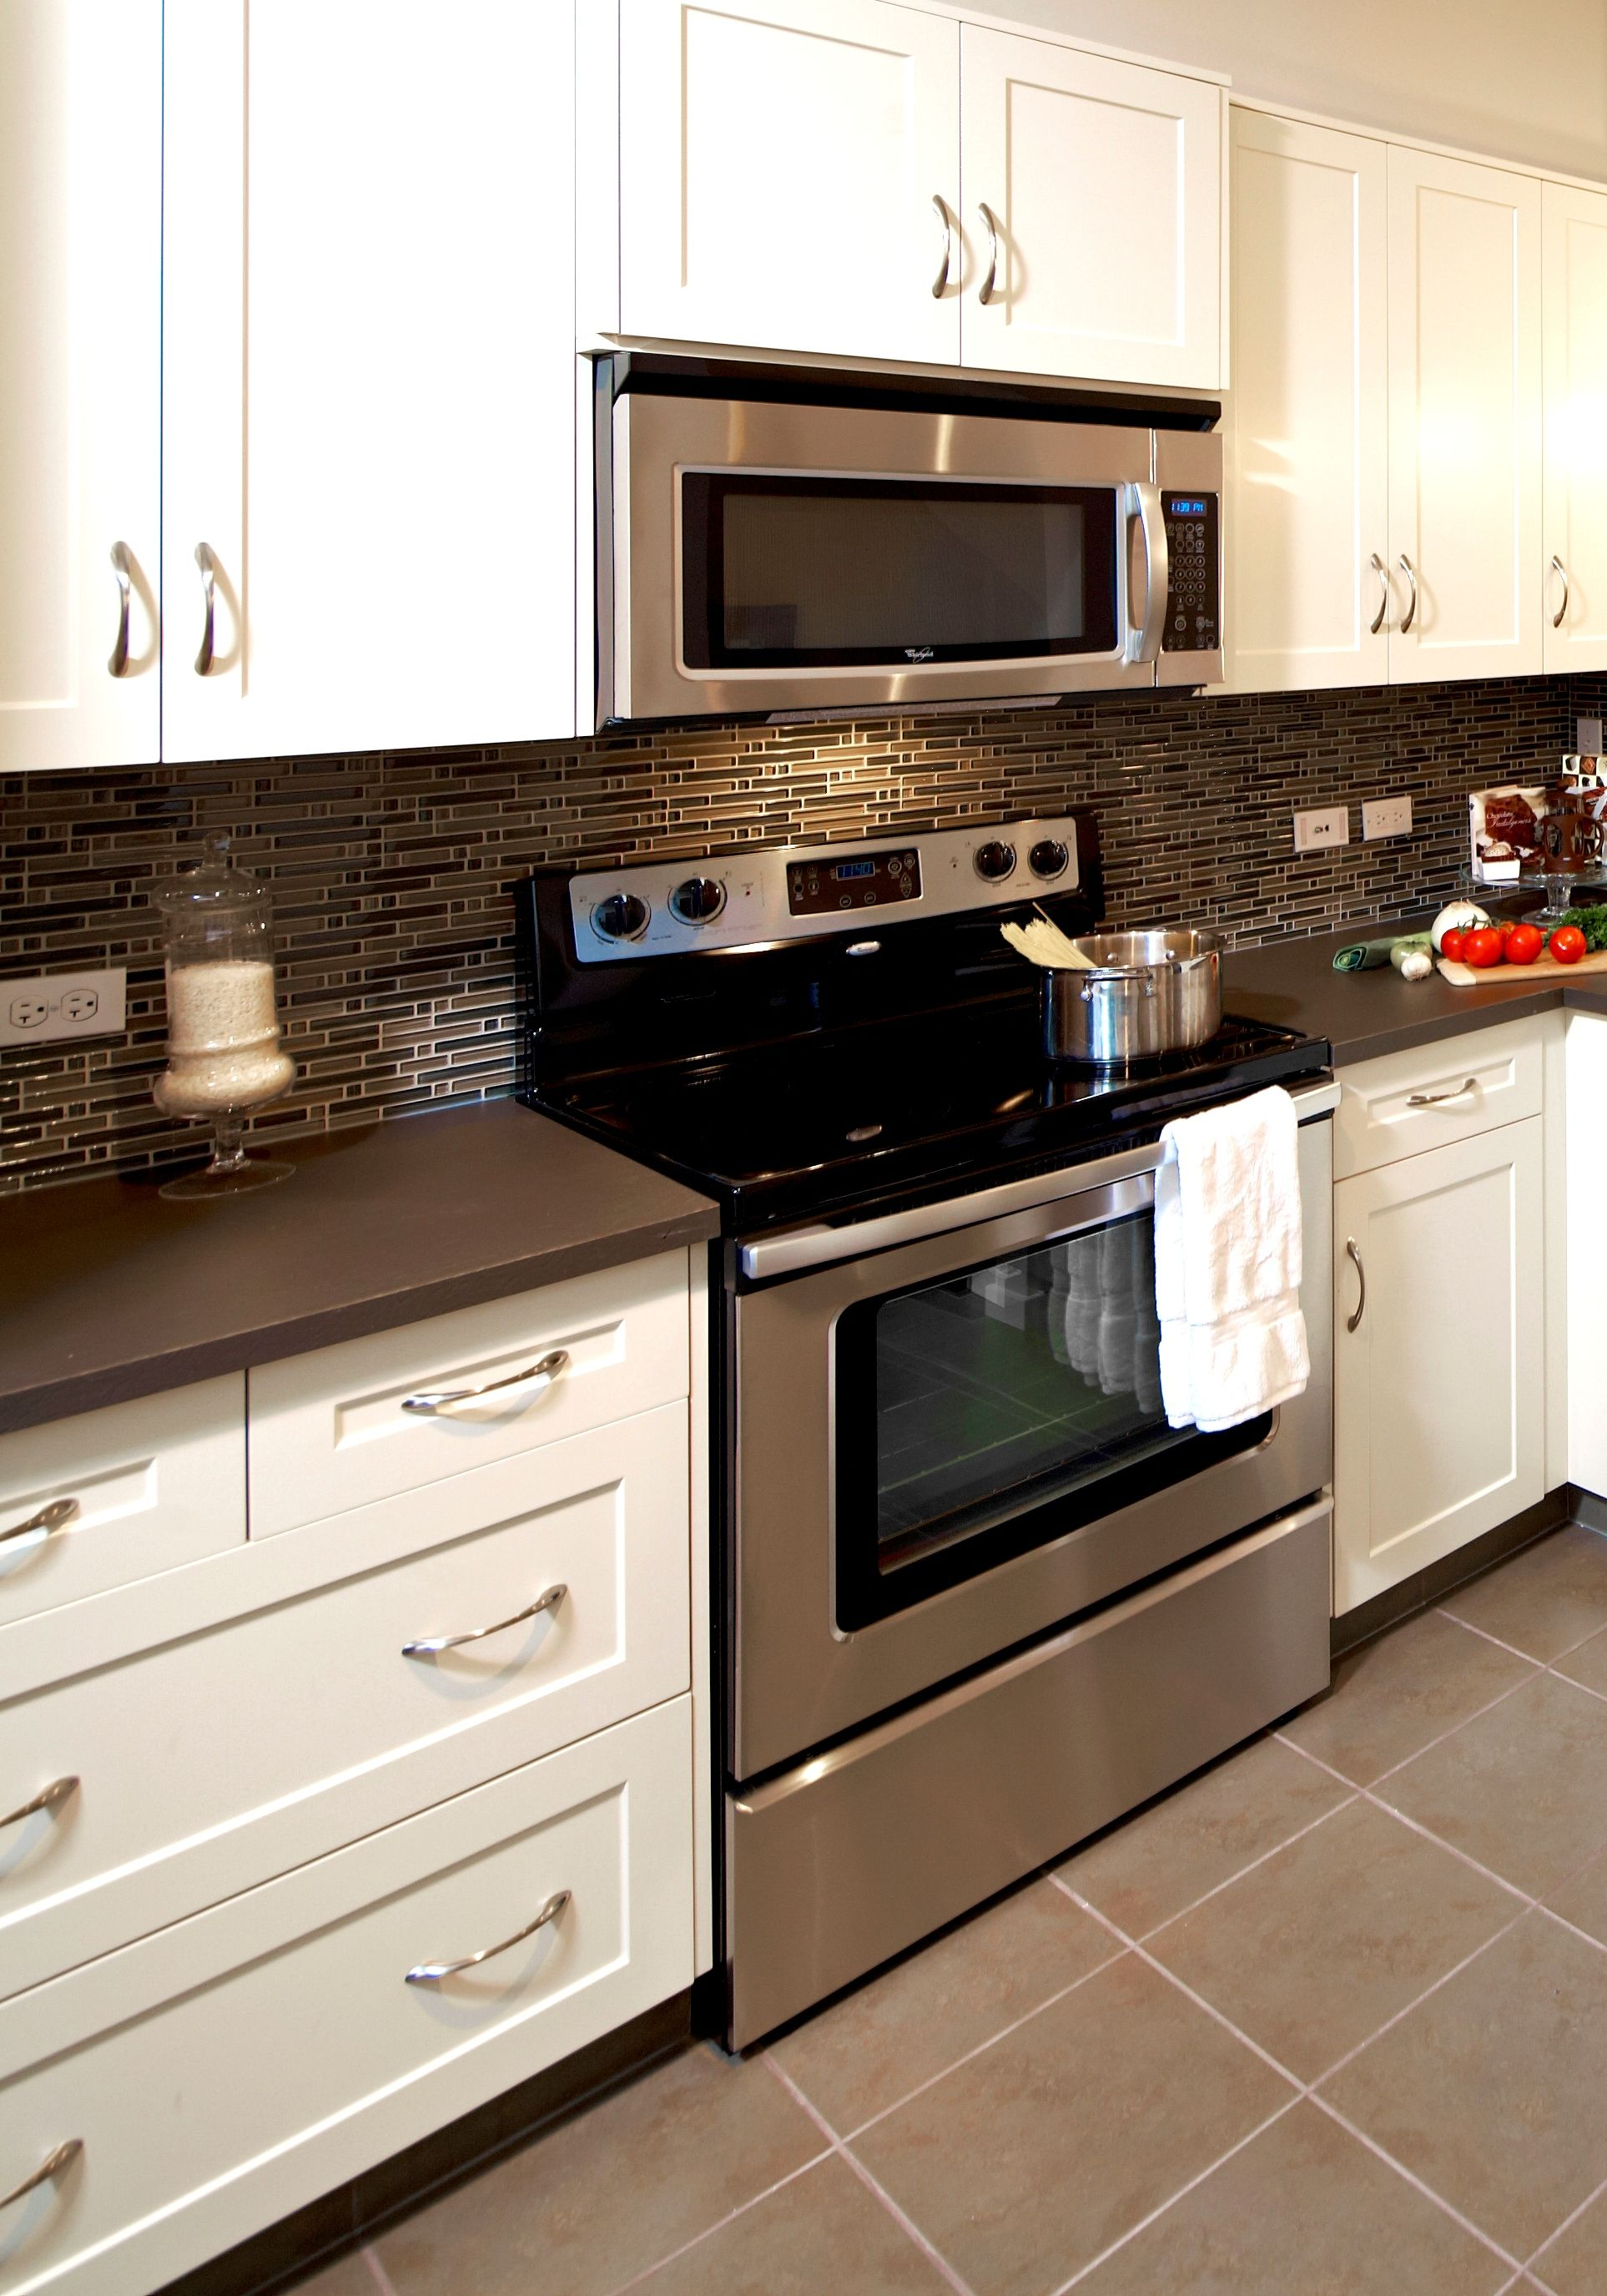 White Shaker Style Cupboards And Dark Countertops With Glass Tile Backsplash And St Kitchen Cabinet Styles Shaker Style Kitchen Cabinets Kitchen Cabinet Trends